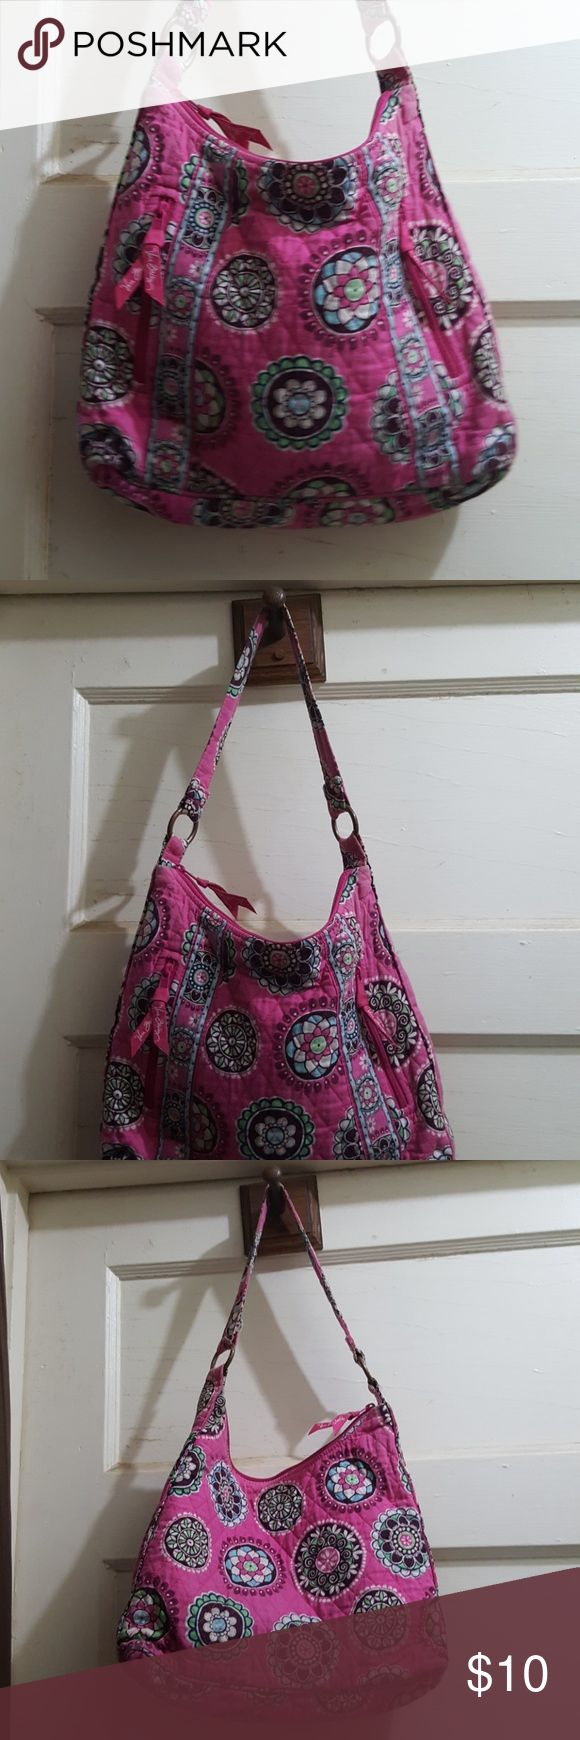 Vera Bradley Medium Hobo Shoulder Bag Cute medium shoulder bag. Pink About 13 x 11 inches. Good condition. Vera Bradley Bags Hobos